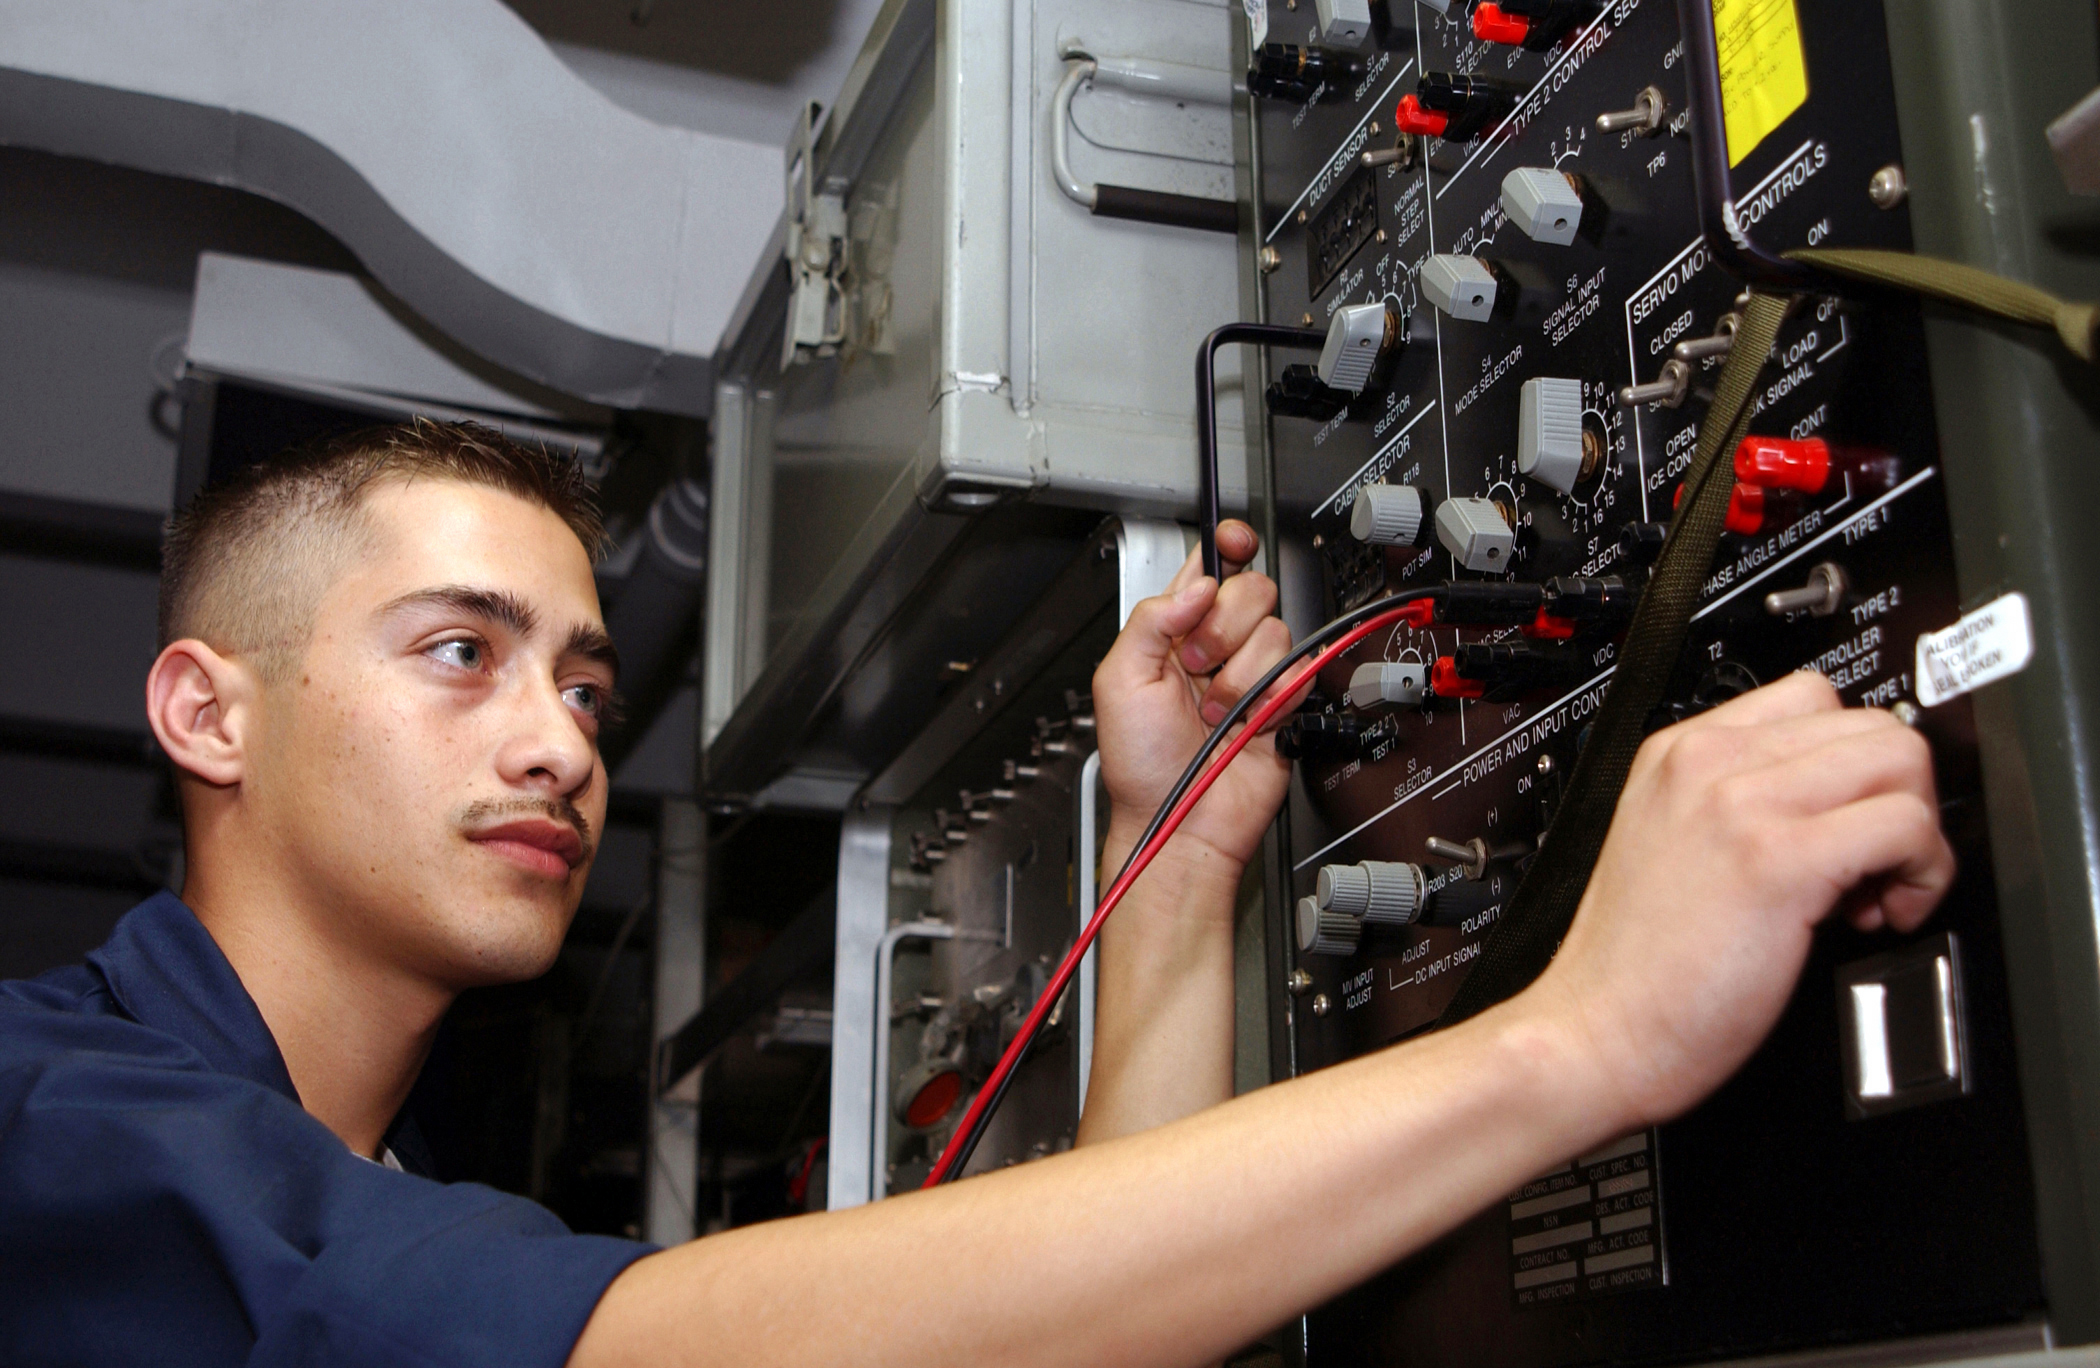 File:US Navy 020902-N-4953E-005 Aviation Electrician conducts a ...